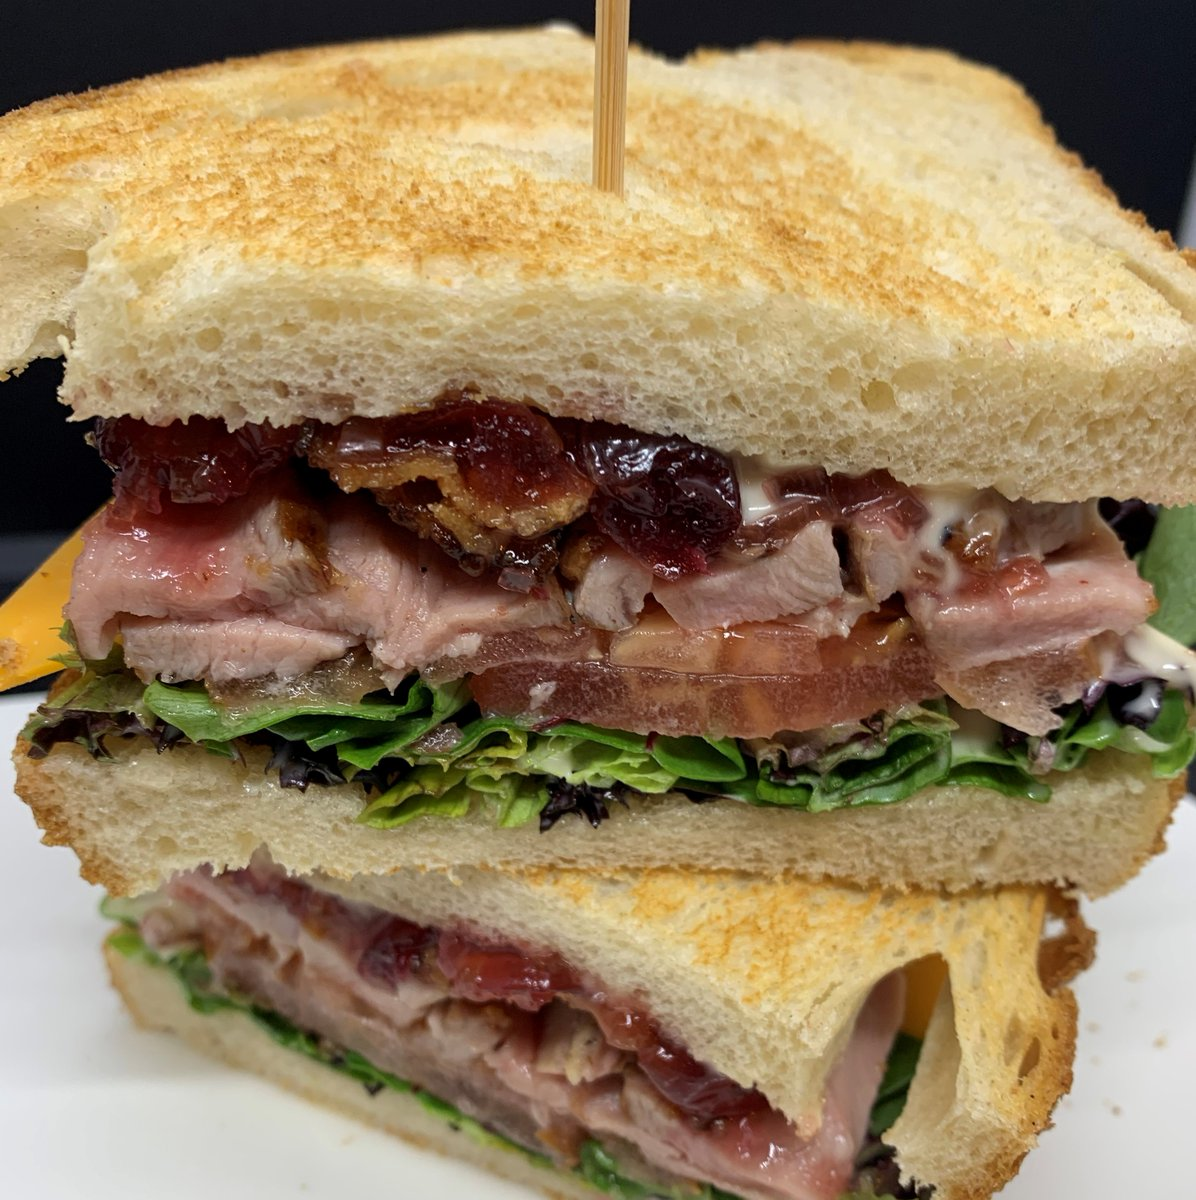 OMG!  @kingcoleduck farms duck breast, crispy bacon, @springhill_03 farms lettuce mix, tomato, cheddar cheese, #housemade #cranberryleekcompote #sourdoughbread #garlicaioli #superfood #supportlocal #lunchordinner https://t.co/OxLSeV5v9F